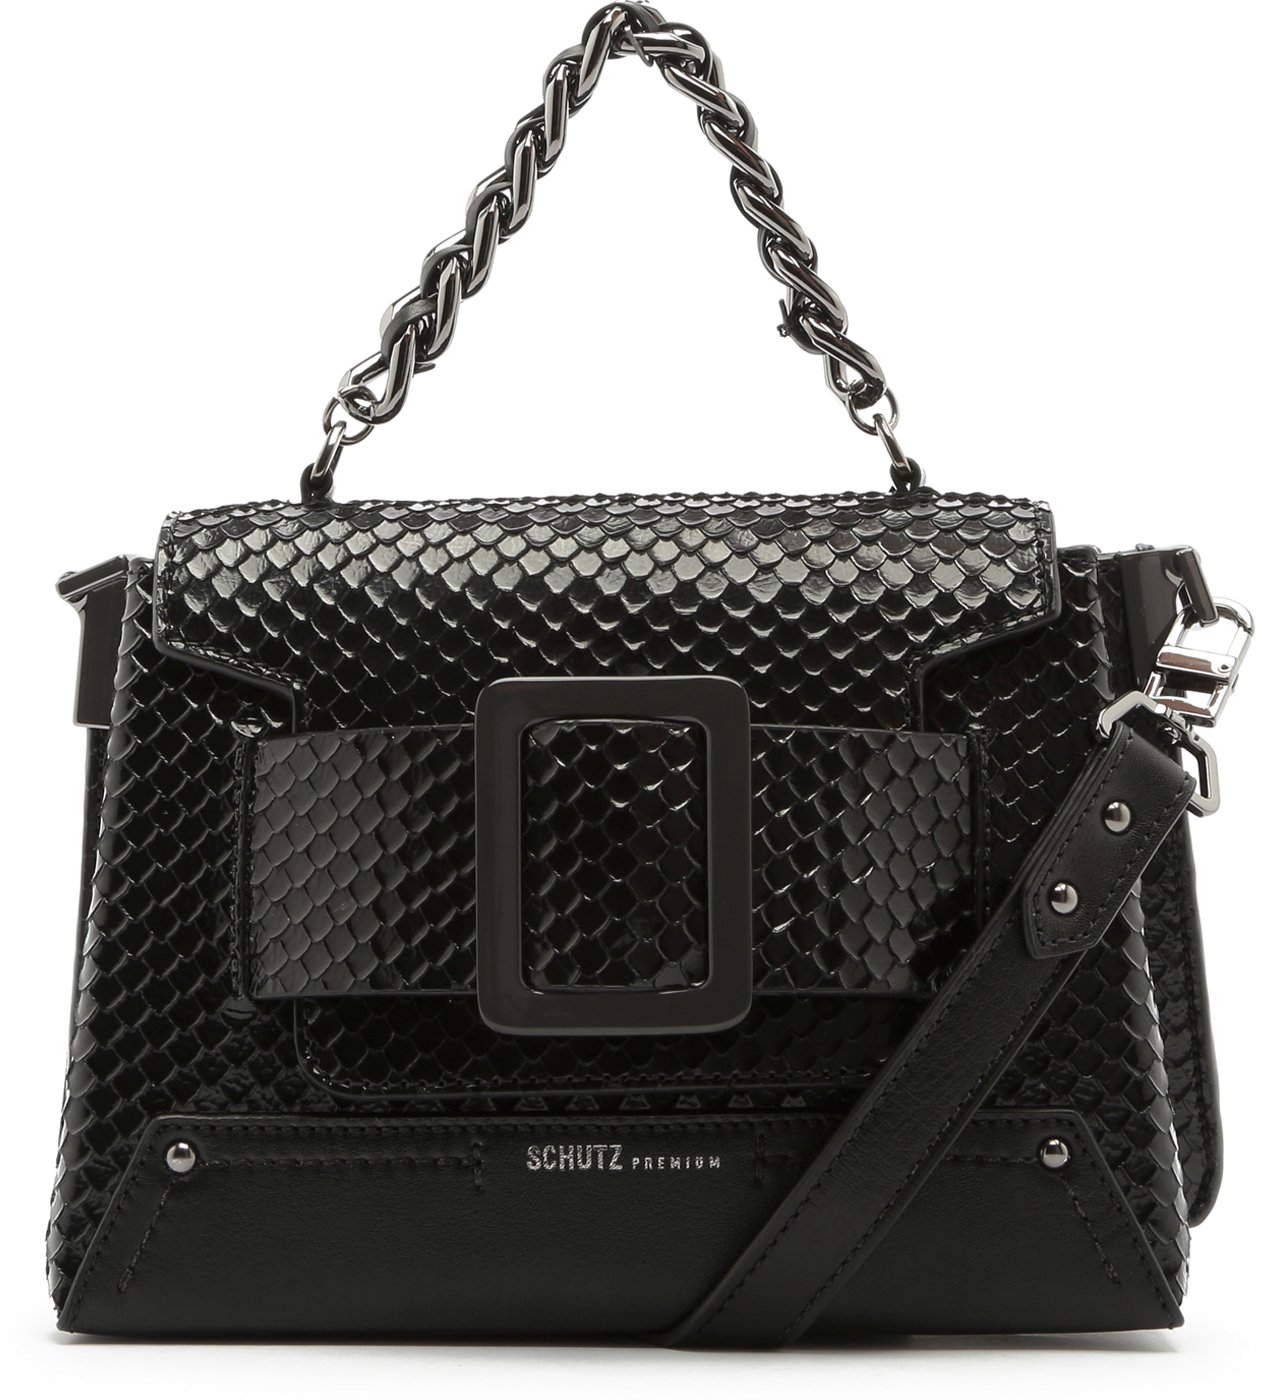 Satchel Buckle Bag Bright Snake Black | Schutz